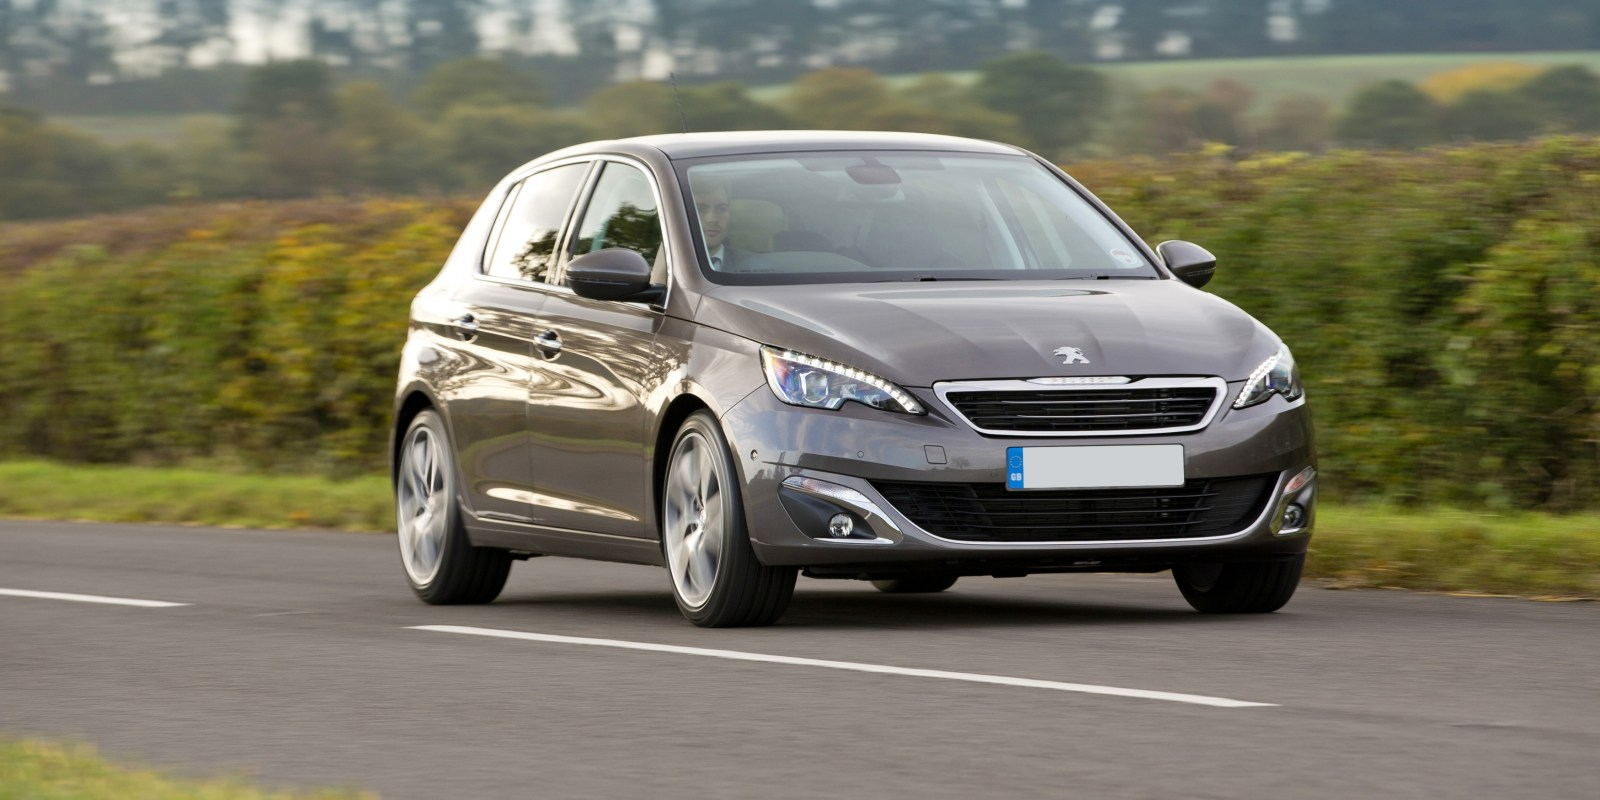 New Peugeot 308 Review Carwow